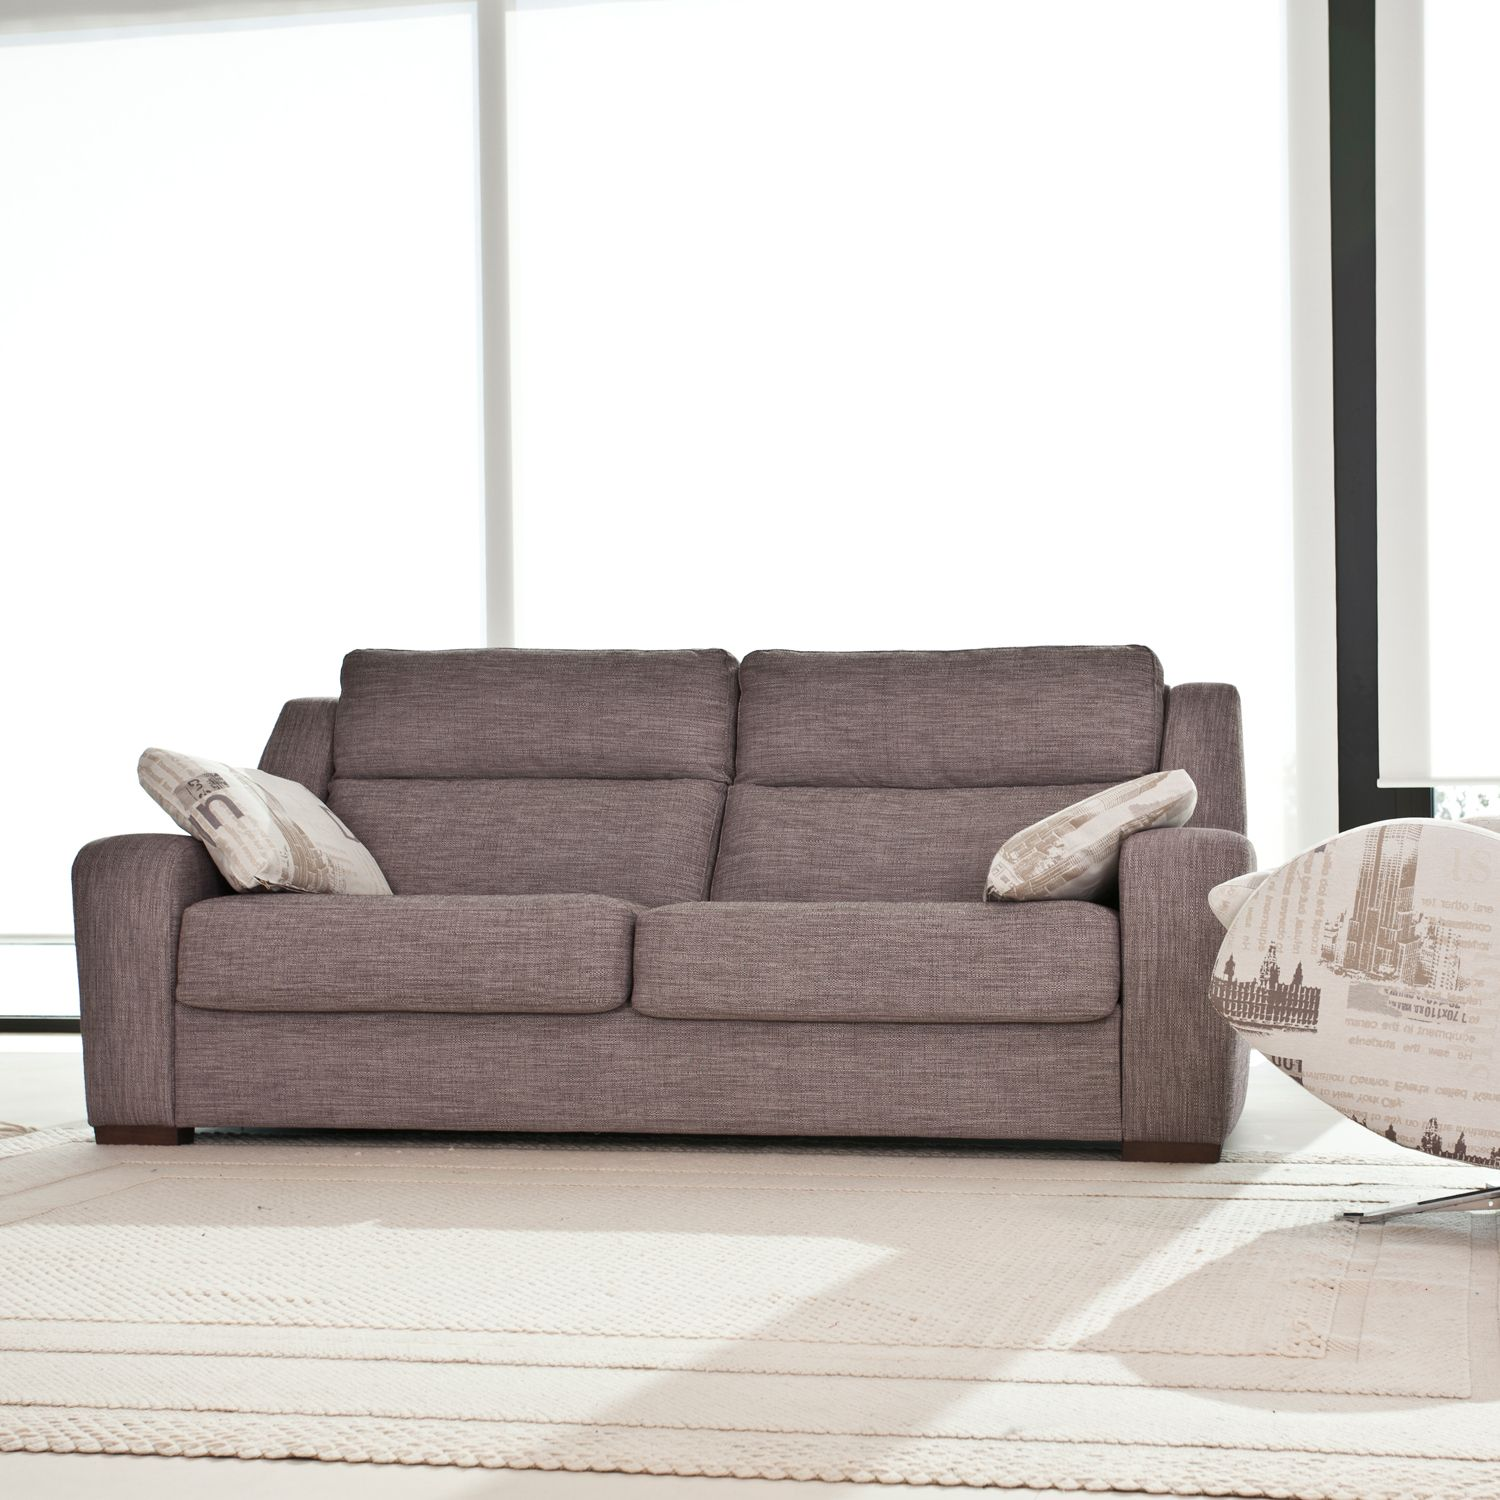 new in store the altea from fama! www.betterfurniture.co.uk/sofas